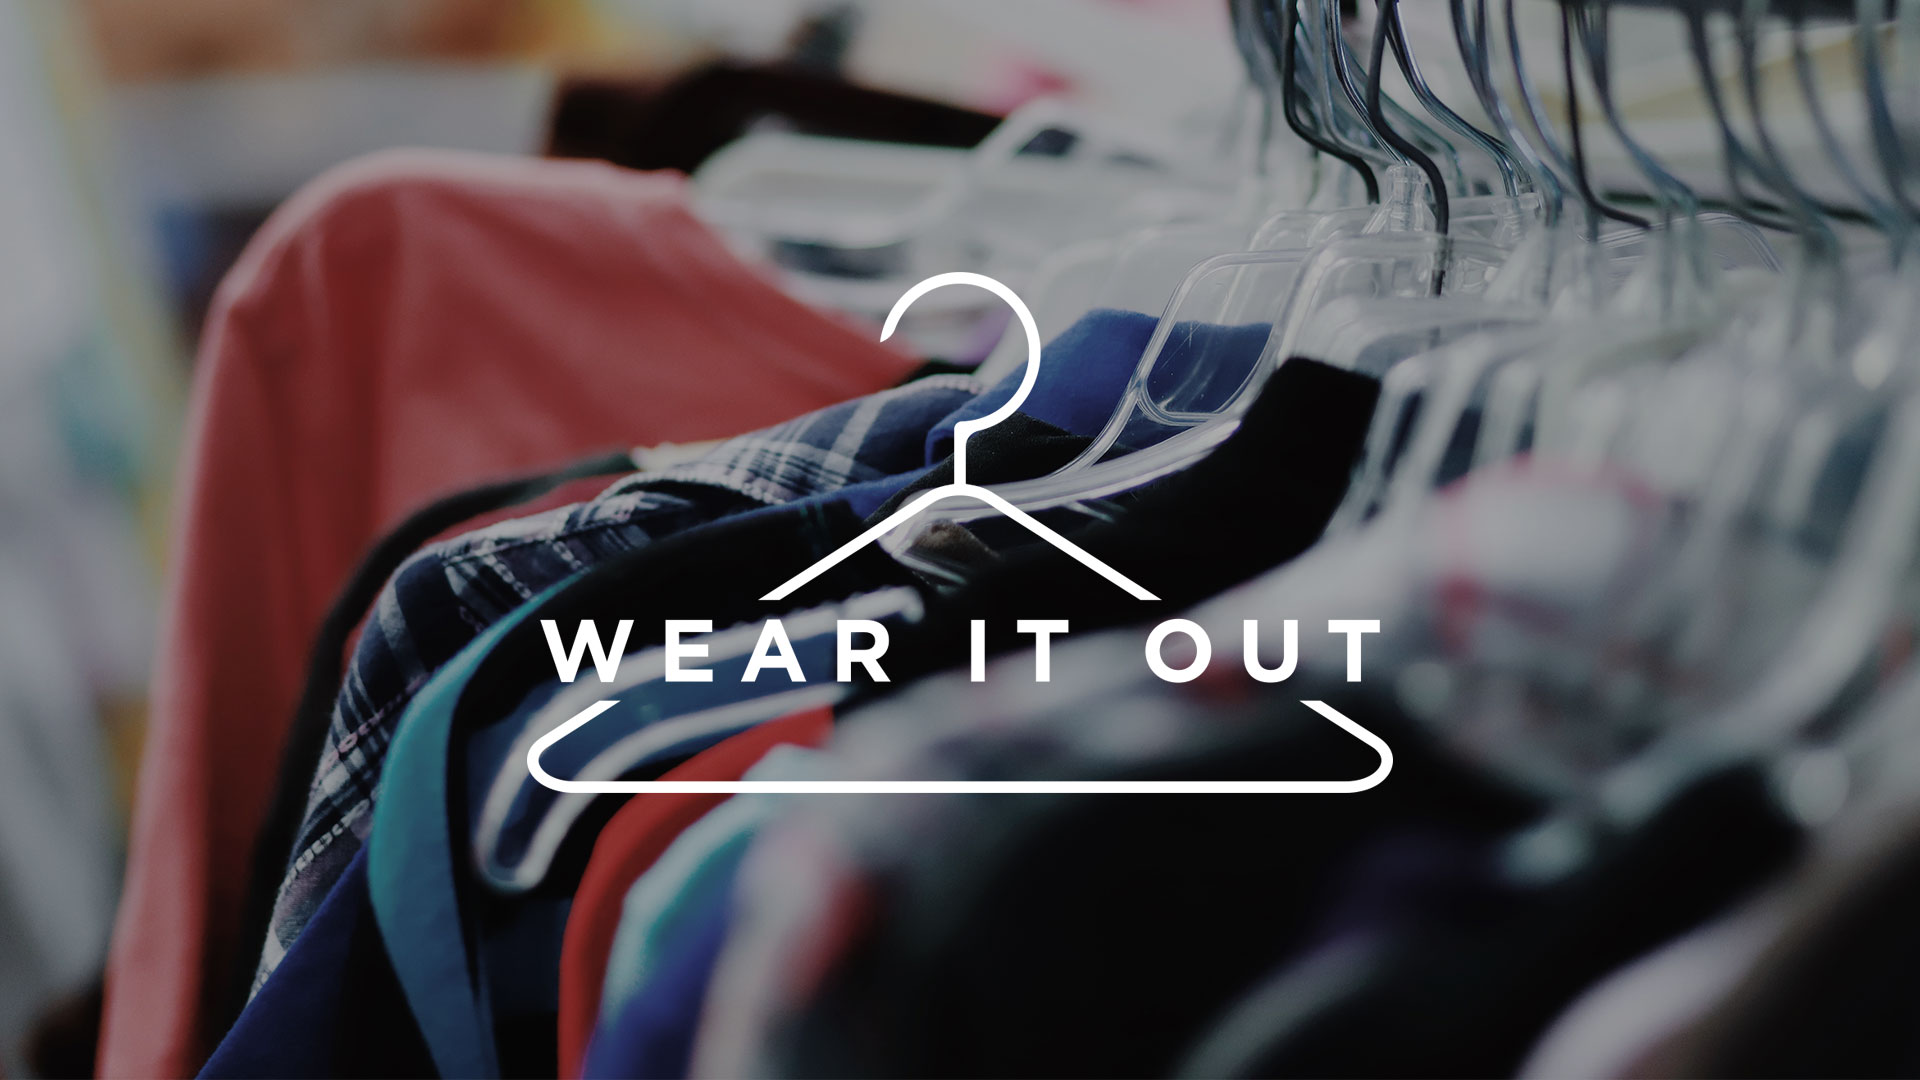 Join us at the wear it out clothing bank. Read on to learn more.